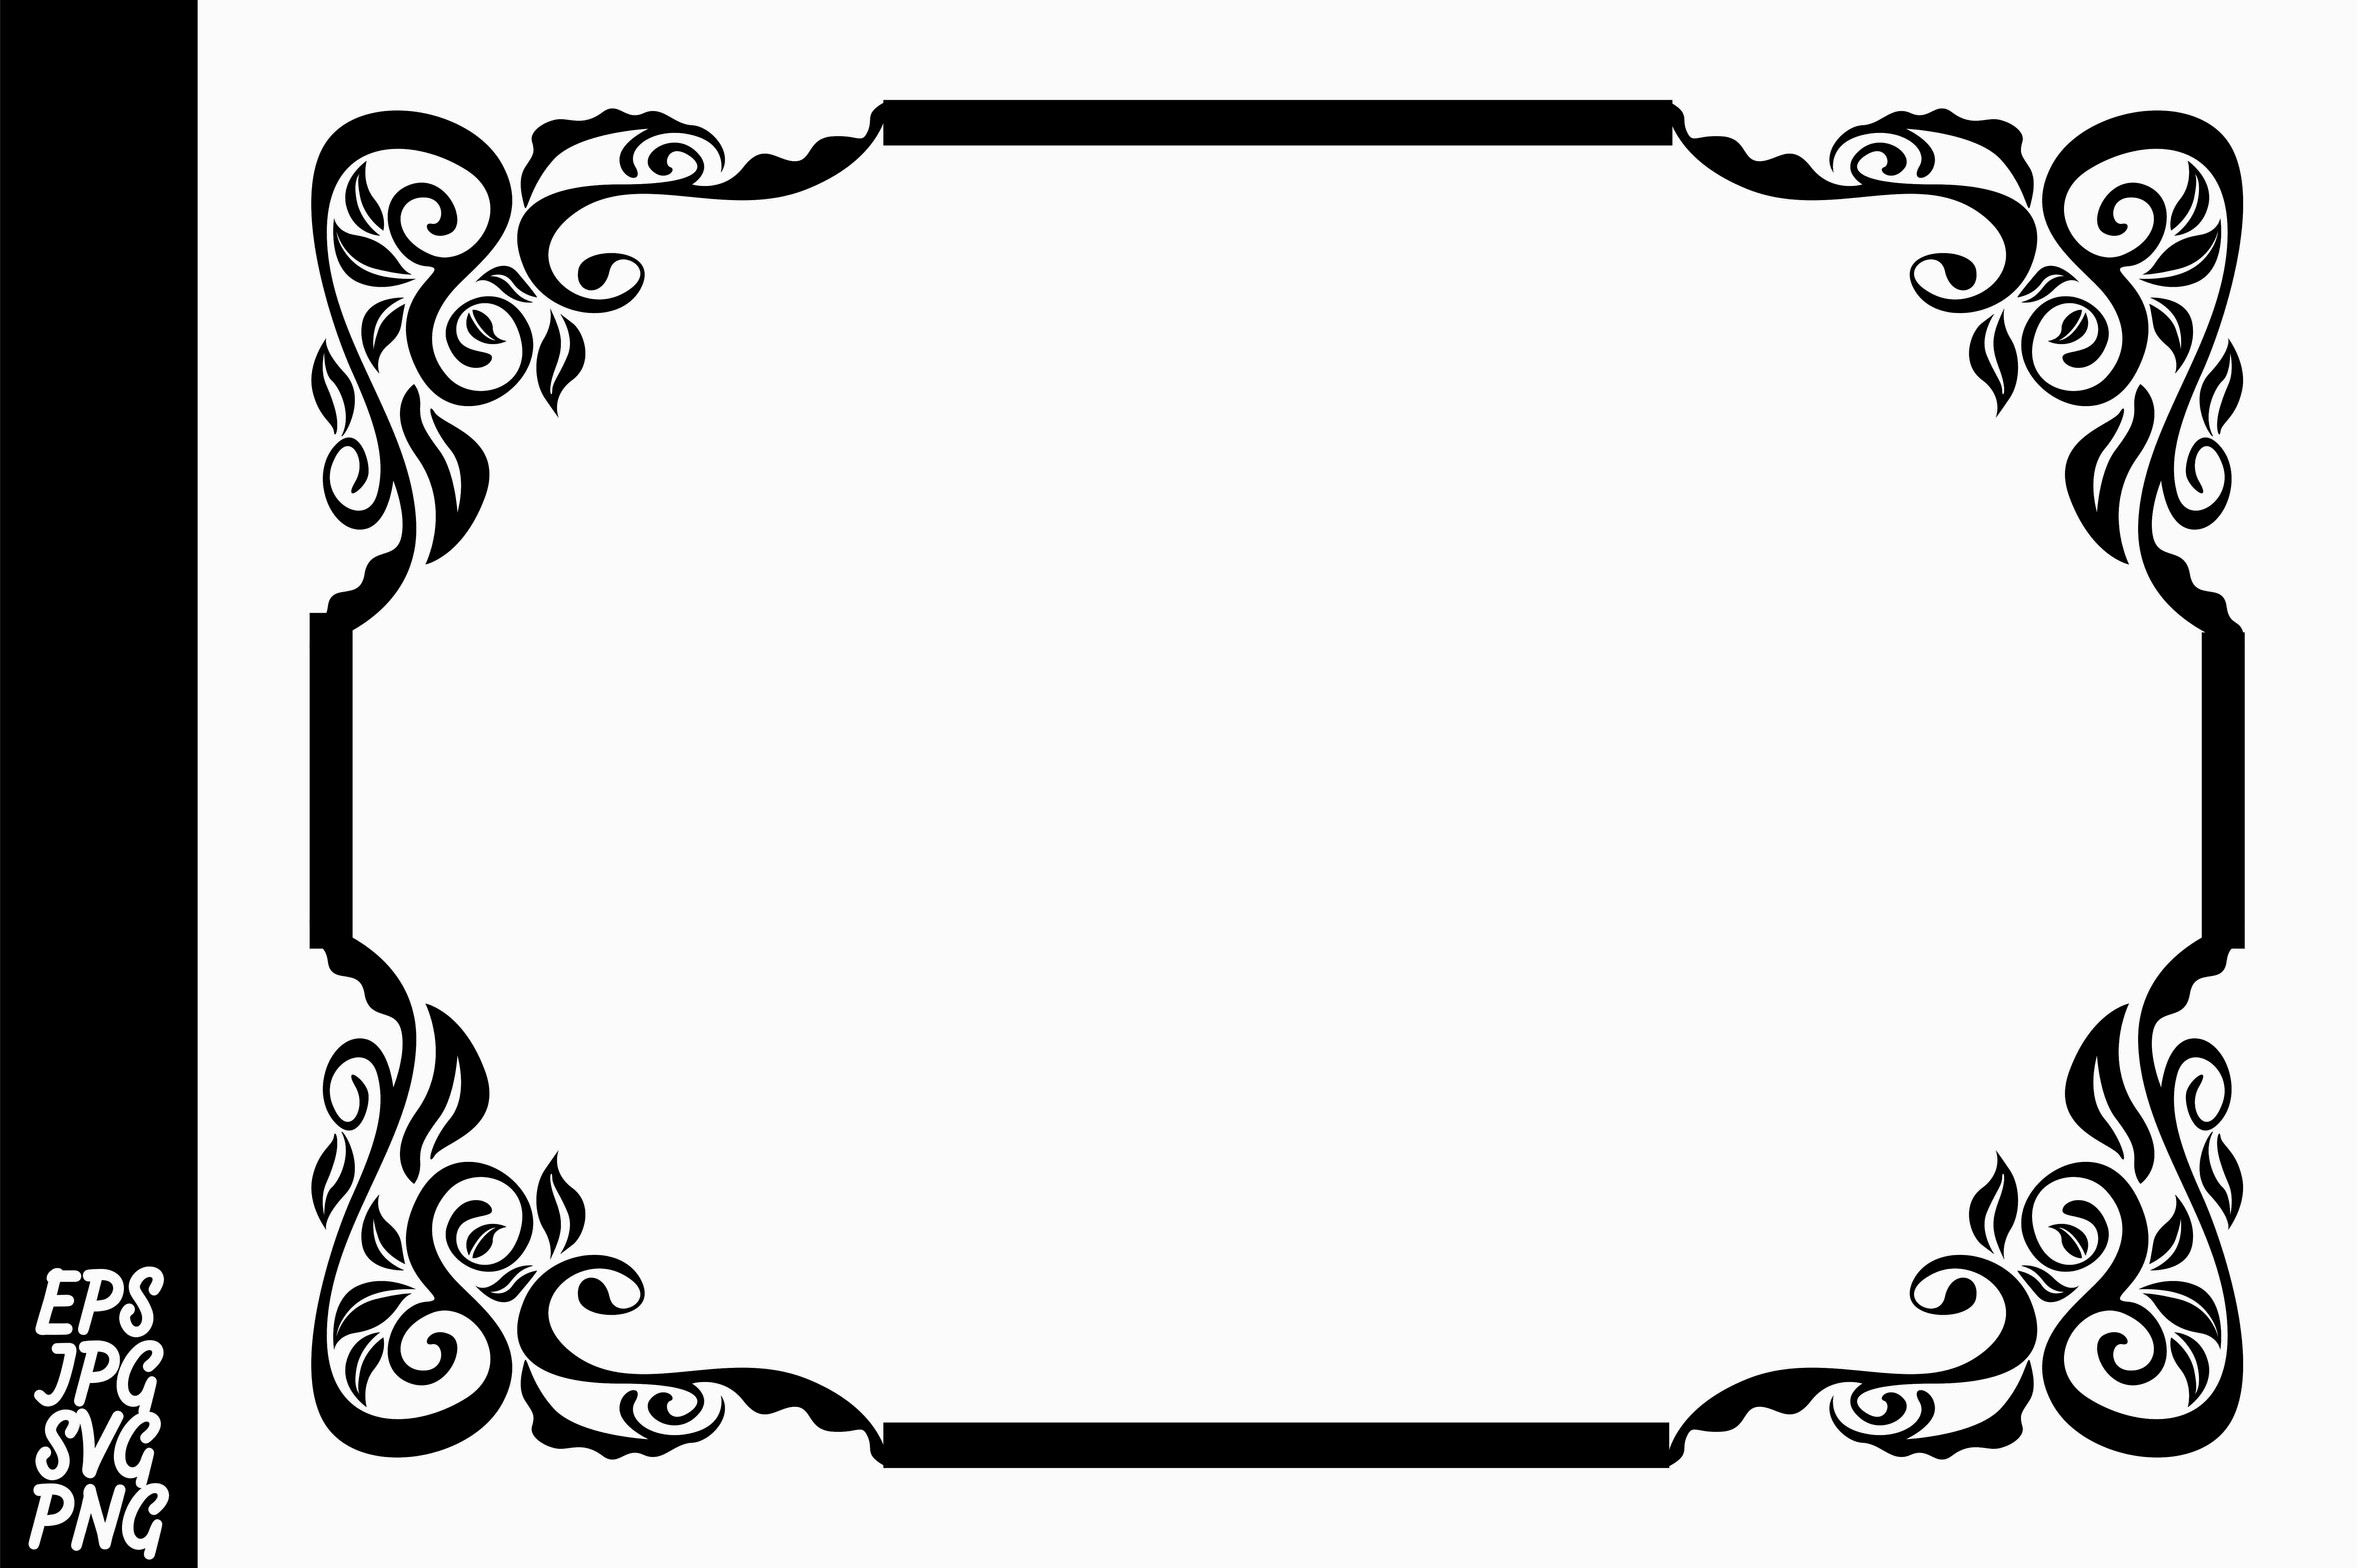 Download Free Decorative Flora Ornament Border Graphic By Arief Sapta Adjie for Cricut Explore, Silhouette and other cutting machines.